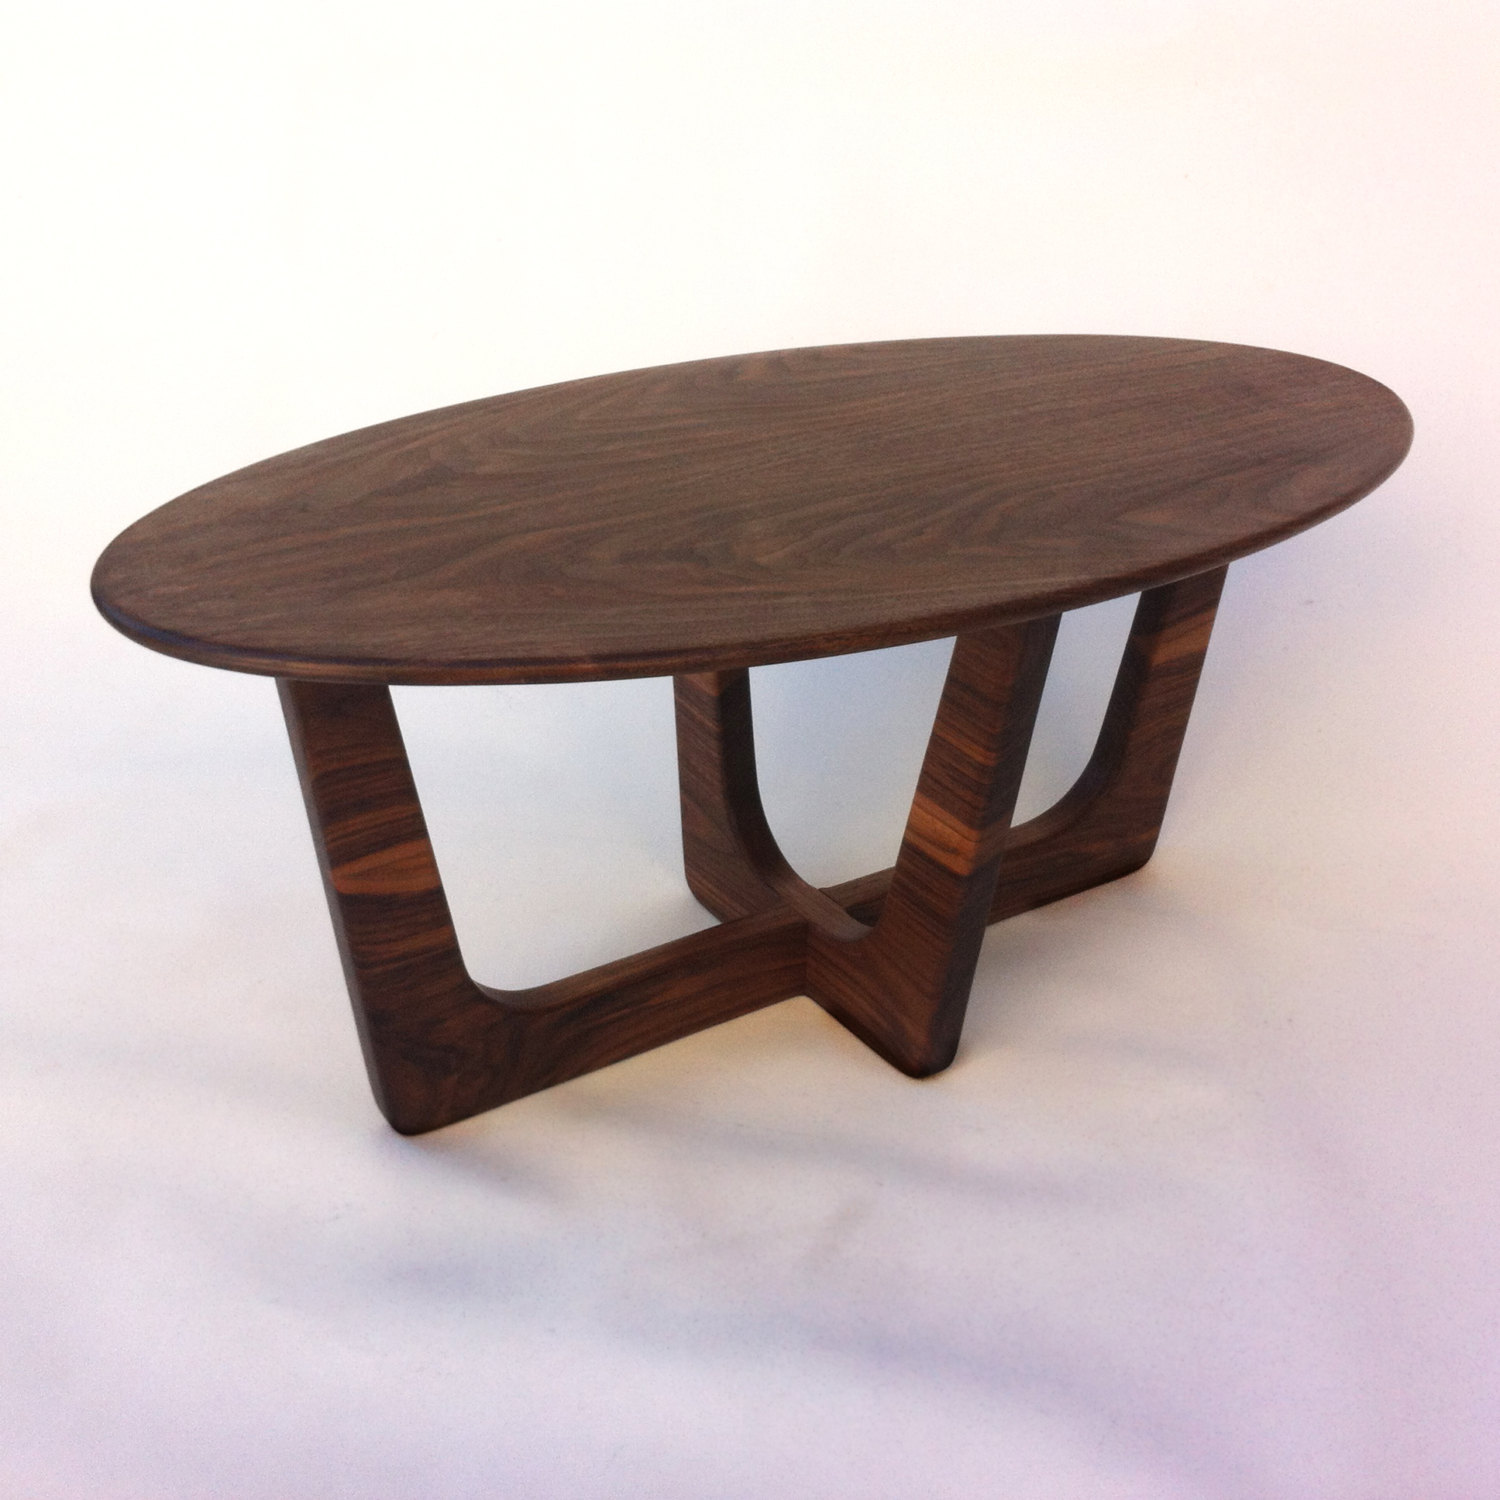 Elliptical Solid Walnut Coffee Table